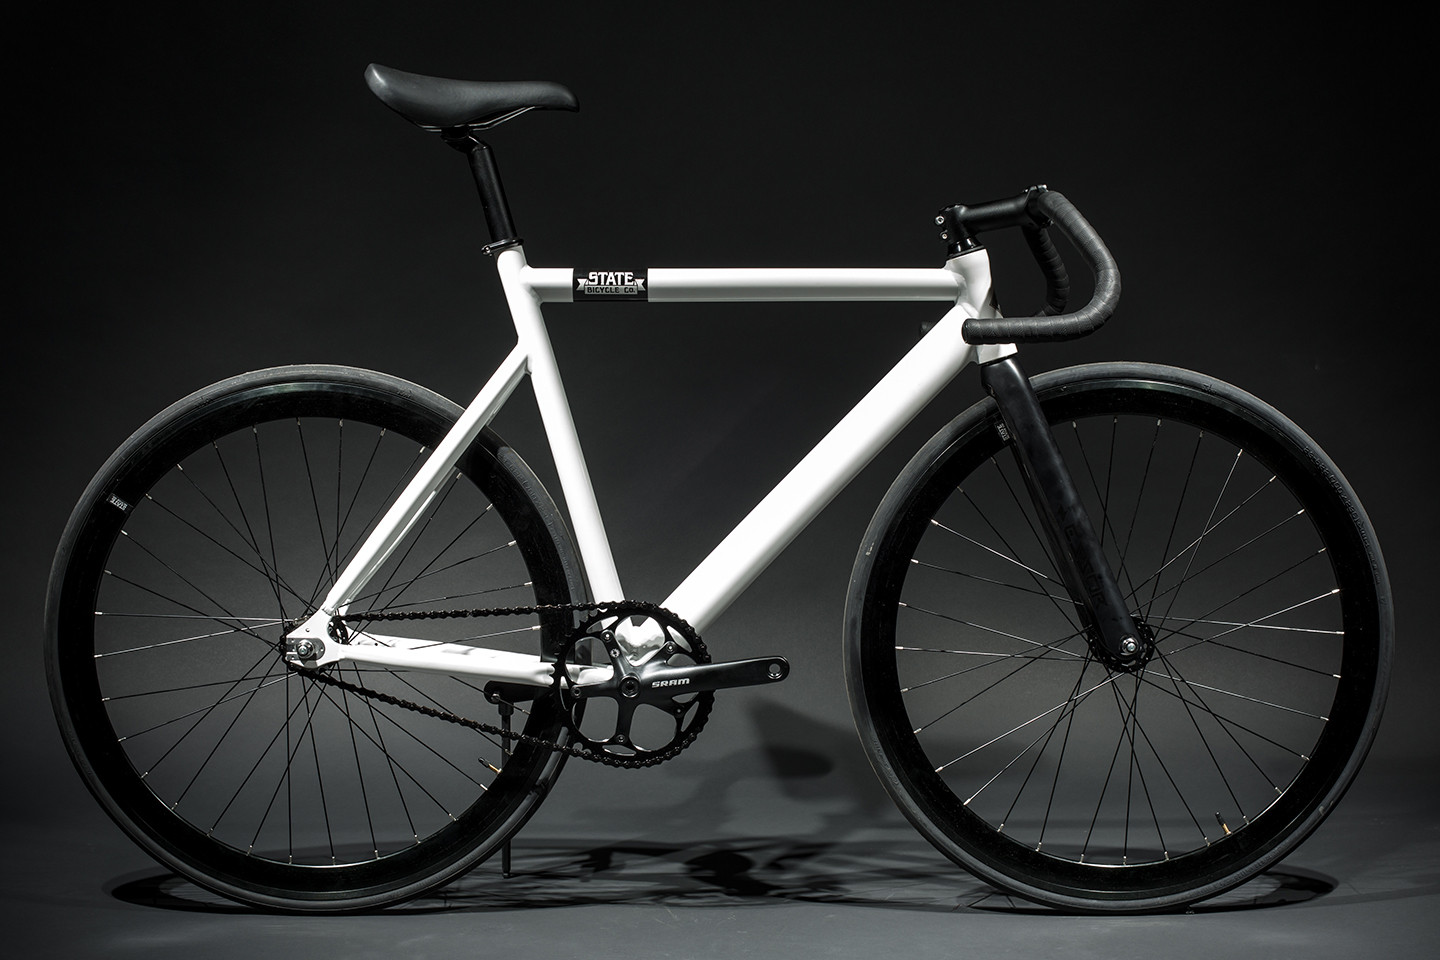 State Bicycle Co Black Label Roys Cyclery Upland California